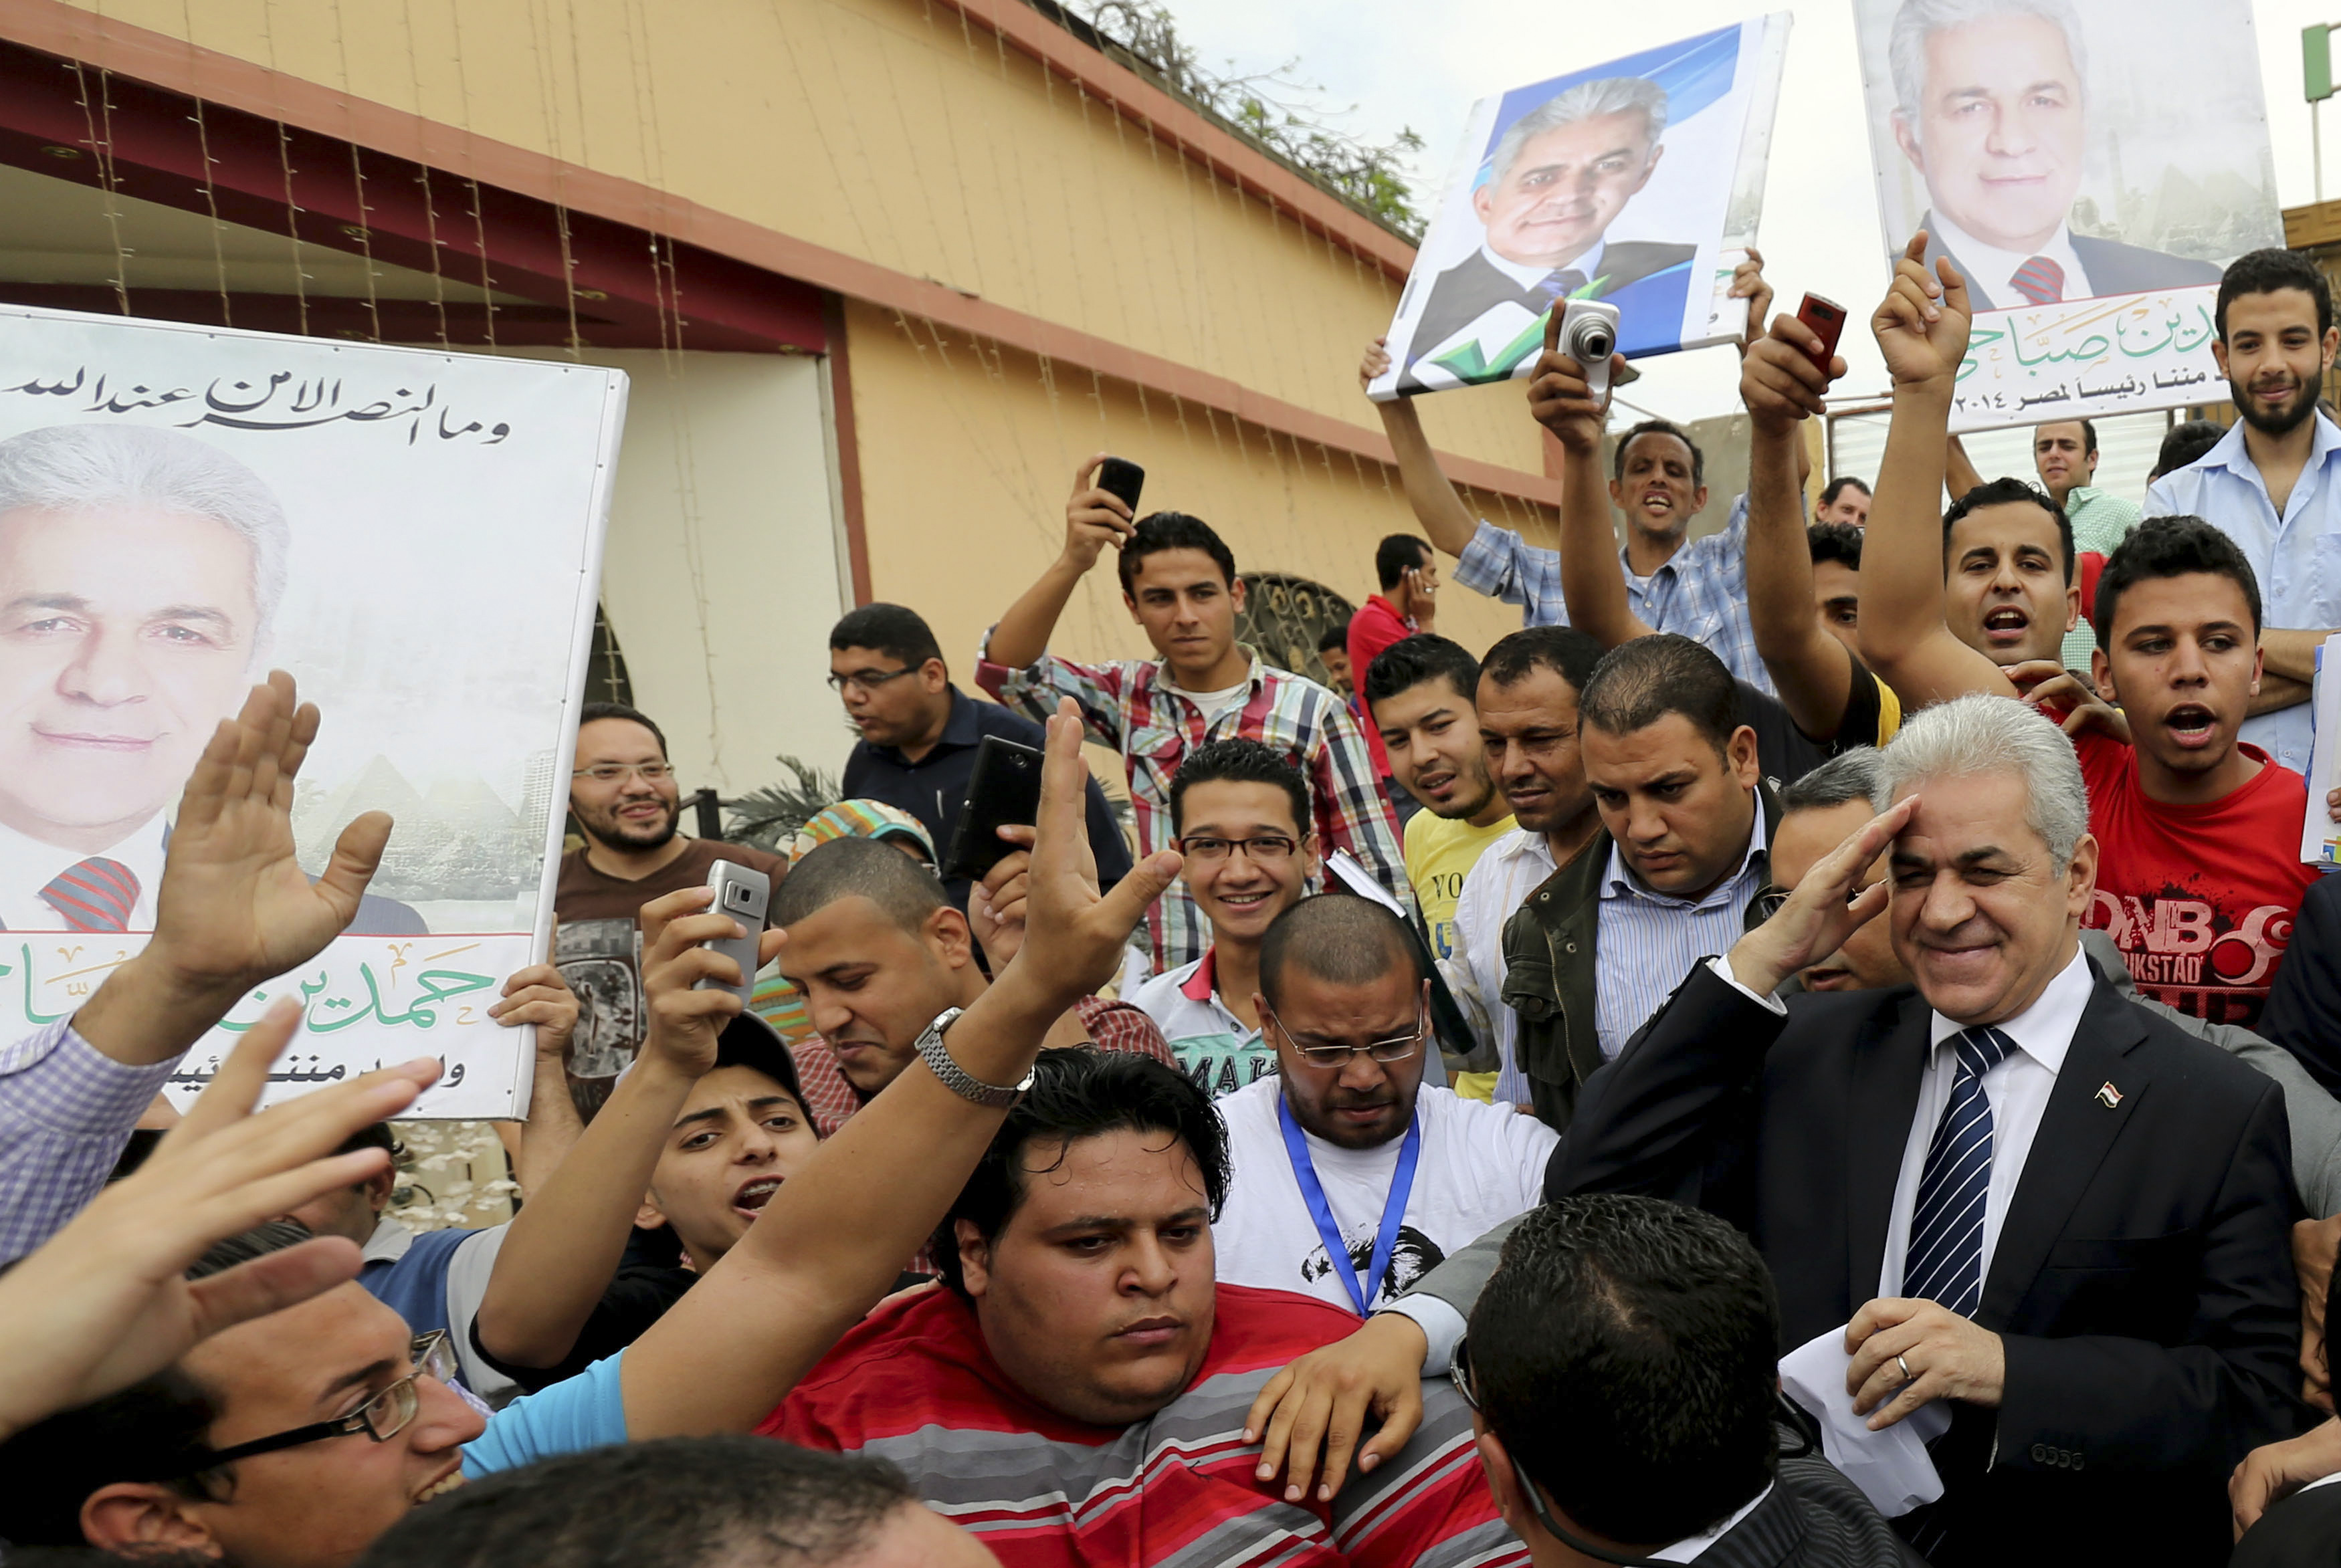 Egypt's leftist presidential candidate Hamdeen Sabahi (center) gestures before a rally in Banha, northwest of Cairo. Egyptians will vote in presidential elections on May 26 and 27.